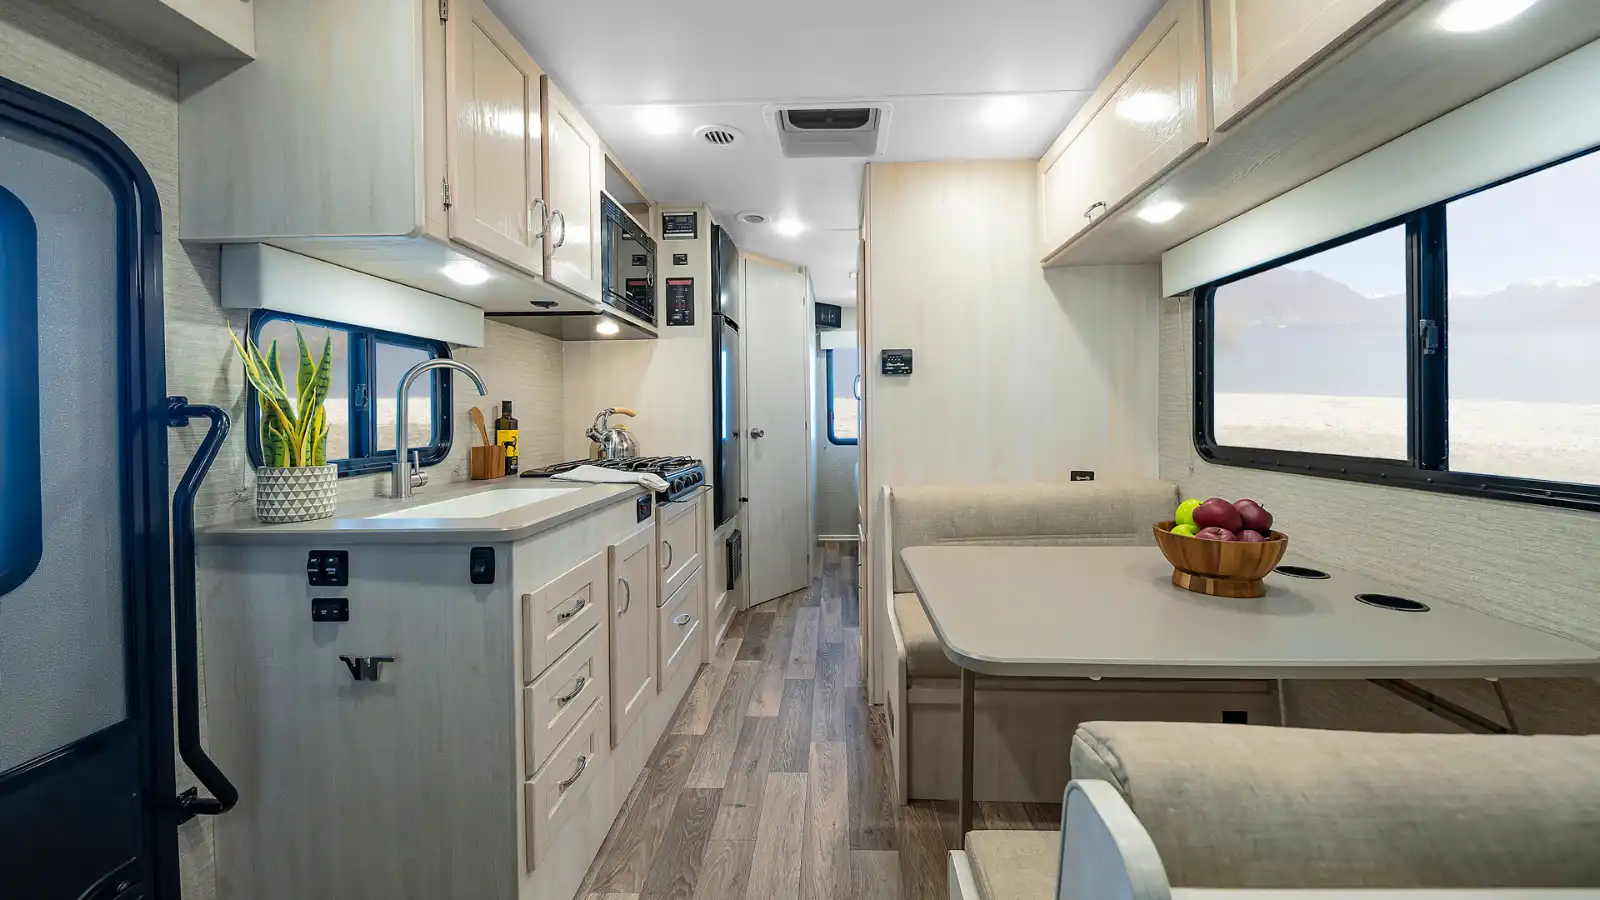 Winnebago Outlook 22C or 22E interior pic affordable class c with counter space